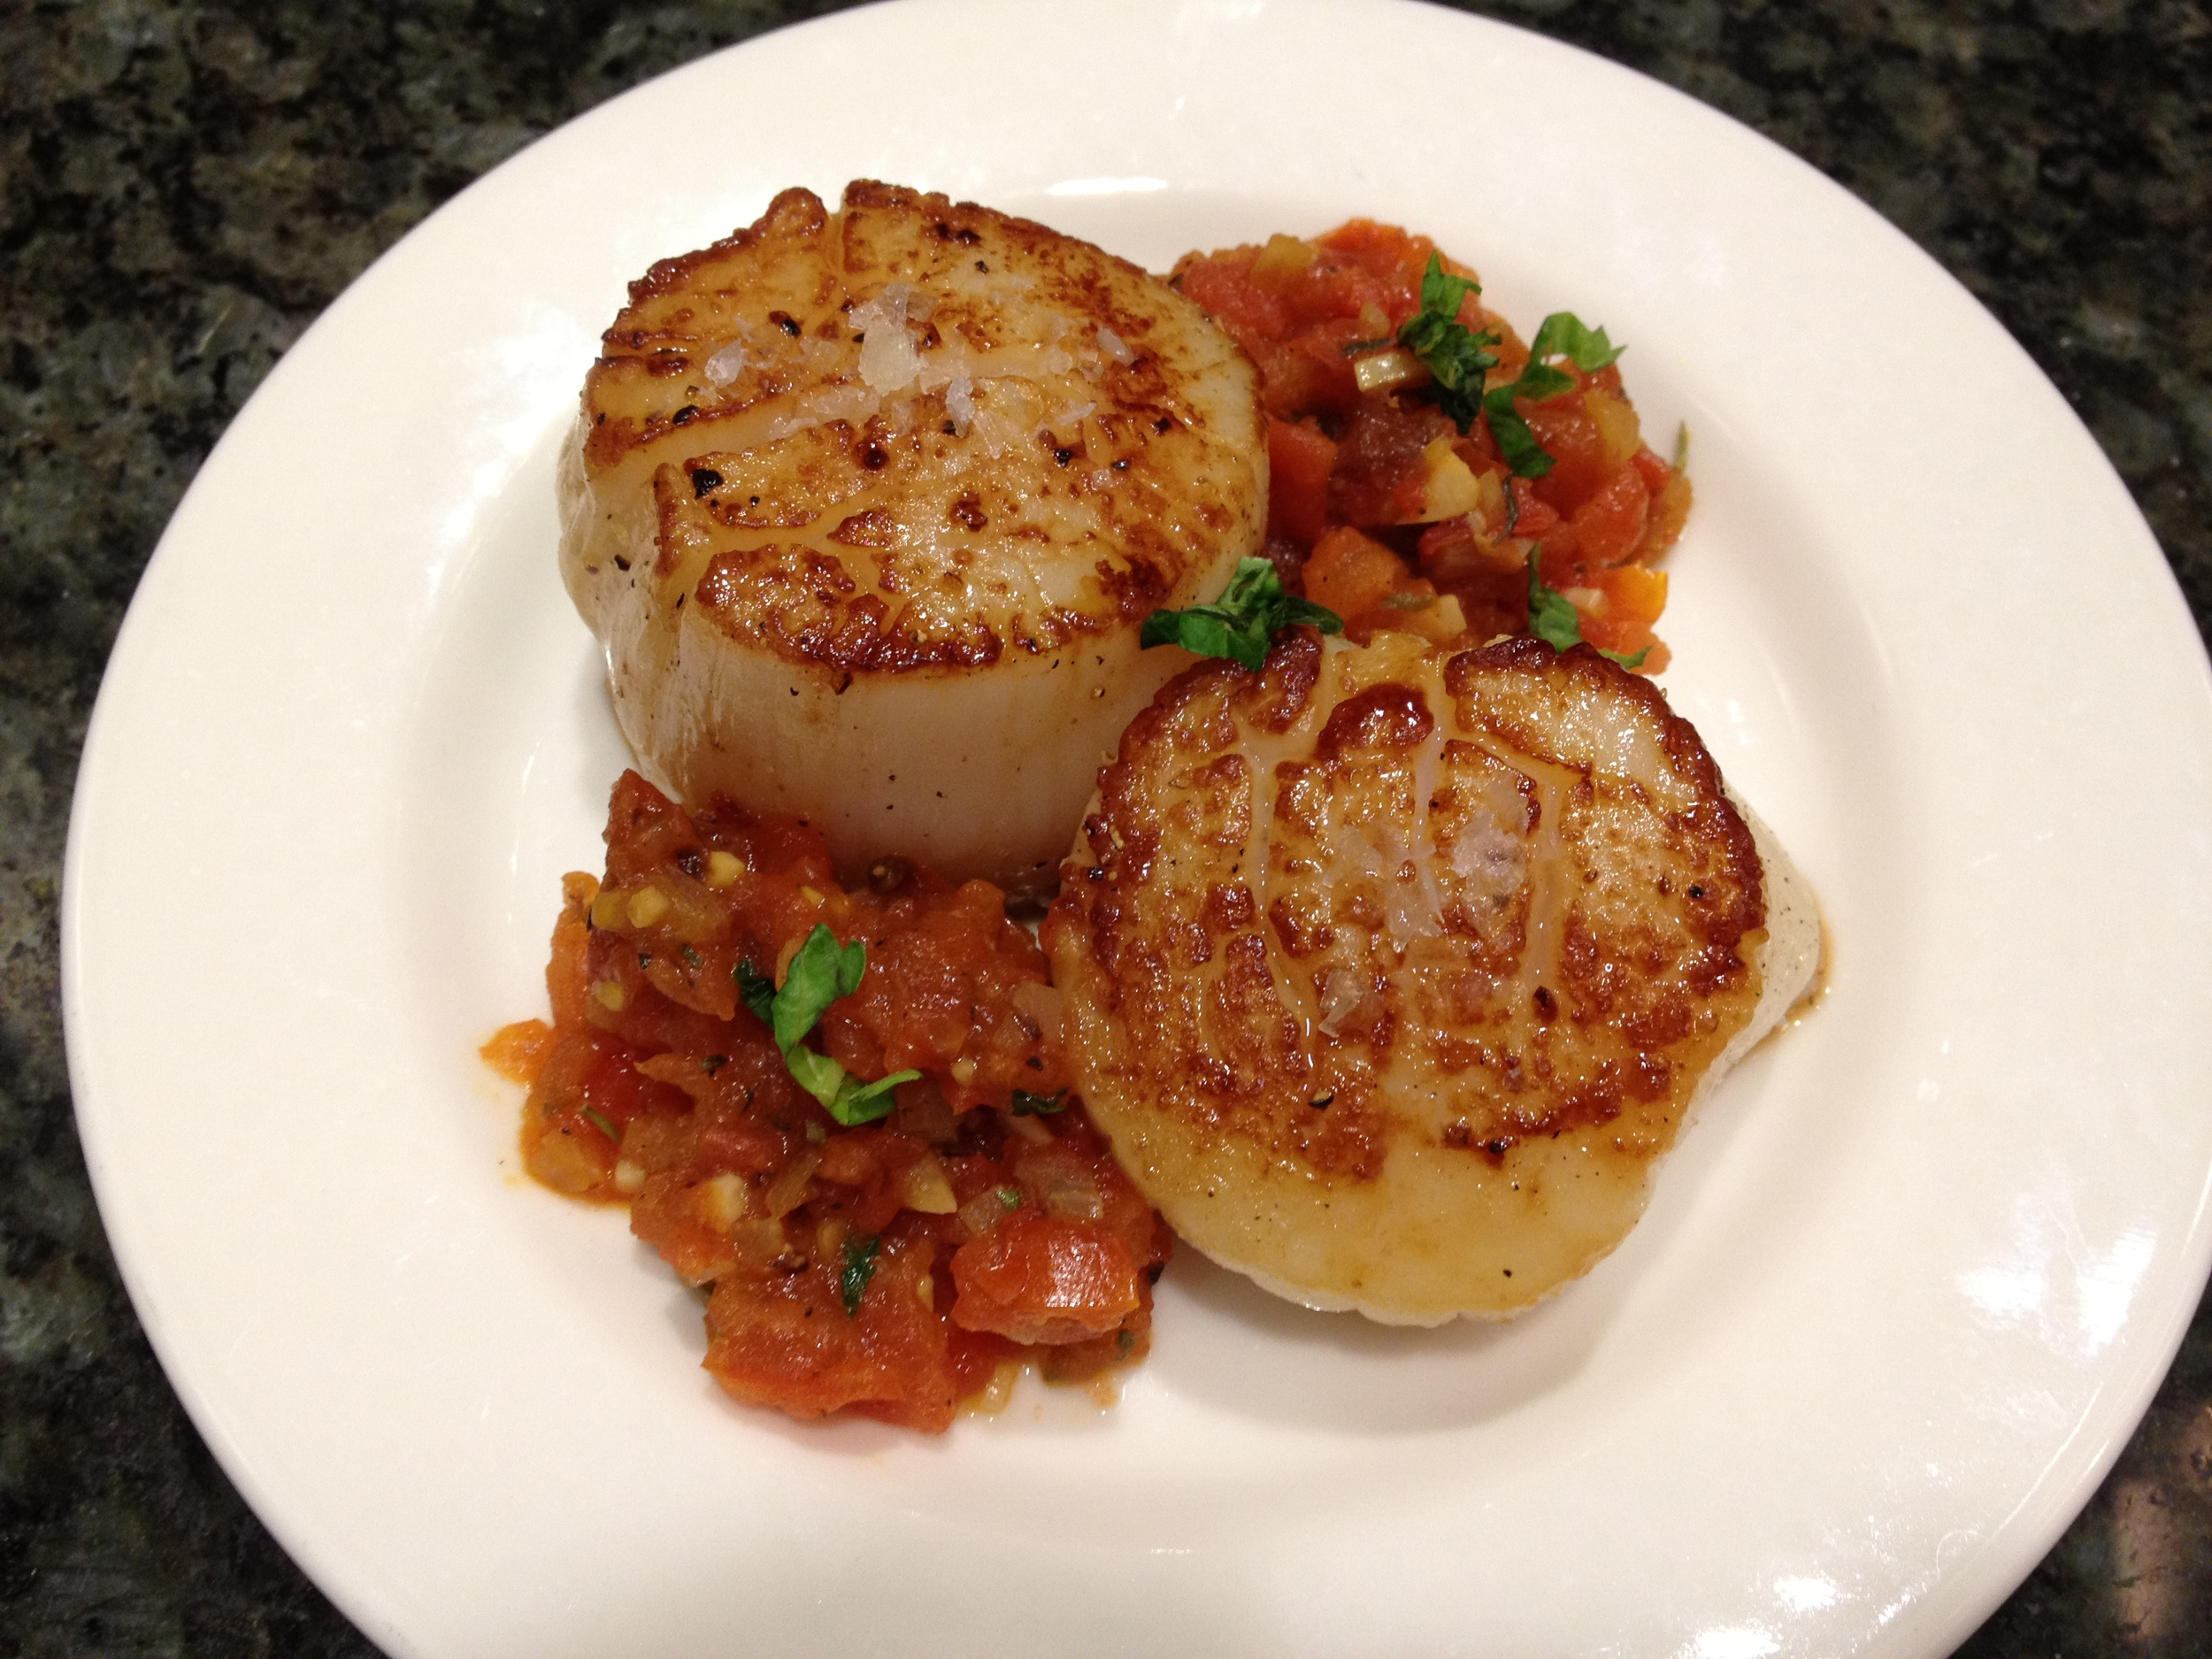 Seared Scallops With Tomato Sauce